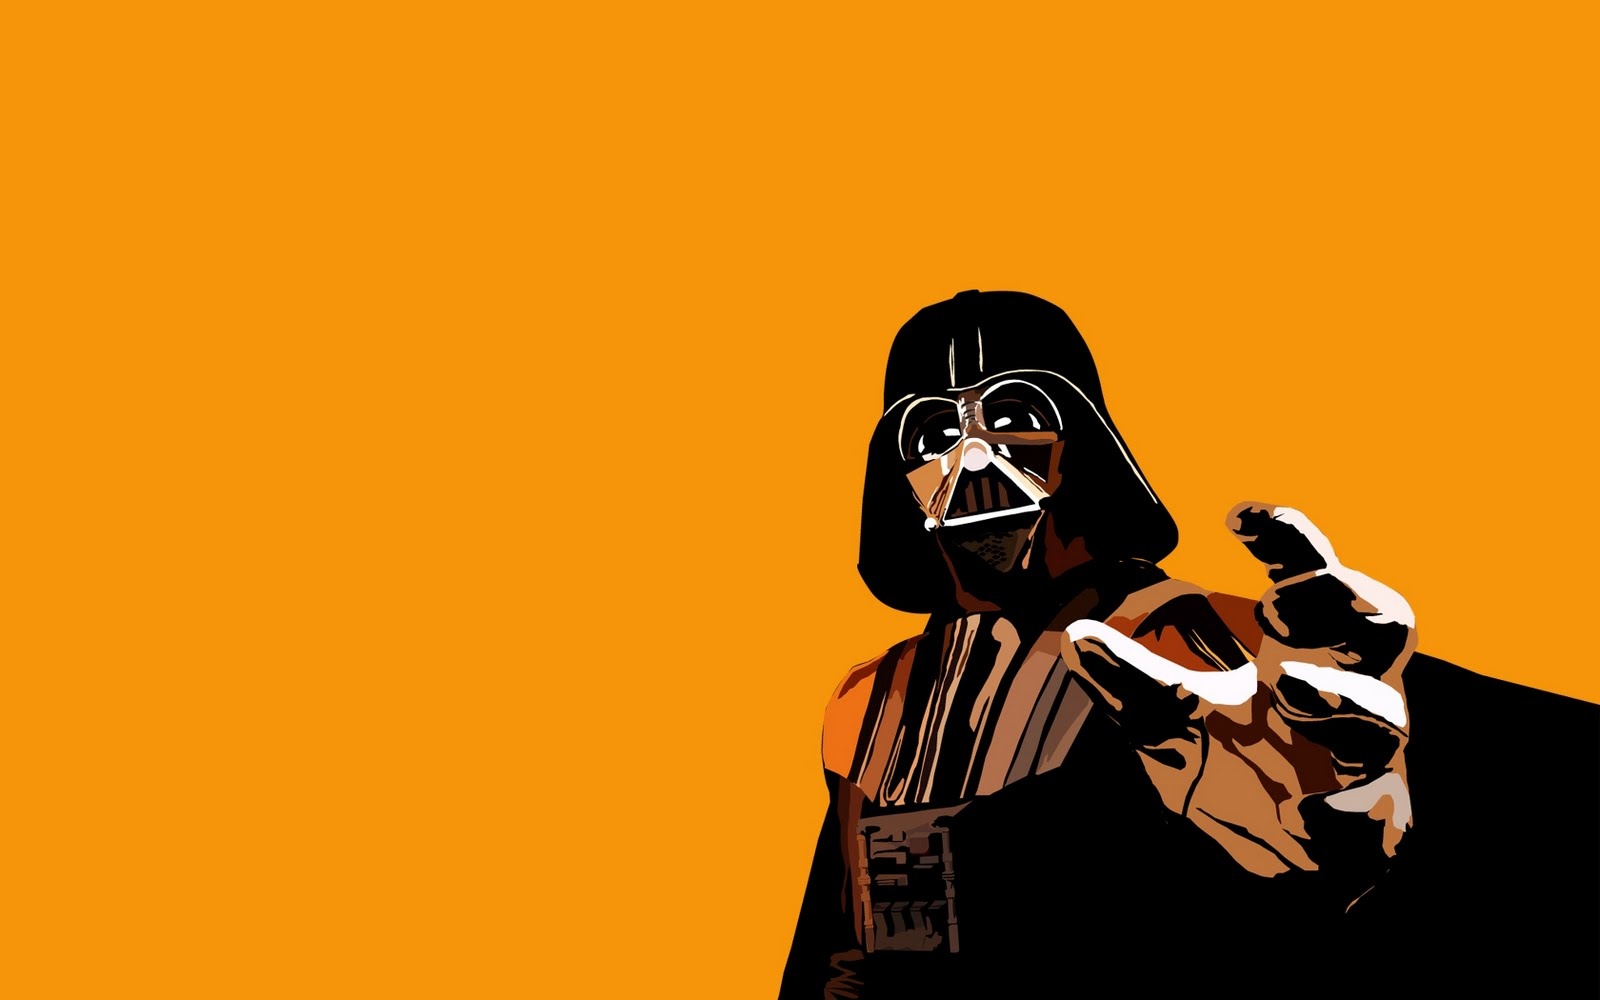 darth vader hd wallpapers hd wallpapers backgrounds